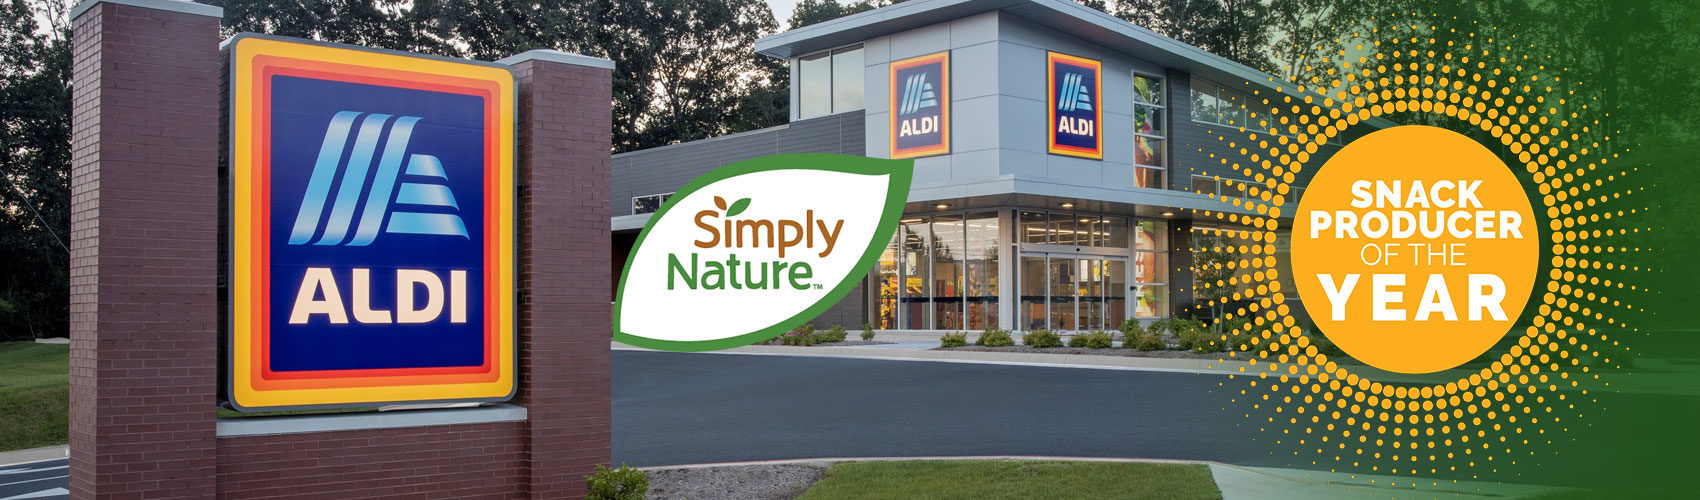 2021 Snack Producer of the Year: ALDI's affordable simplicity